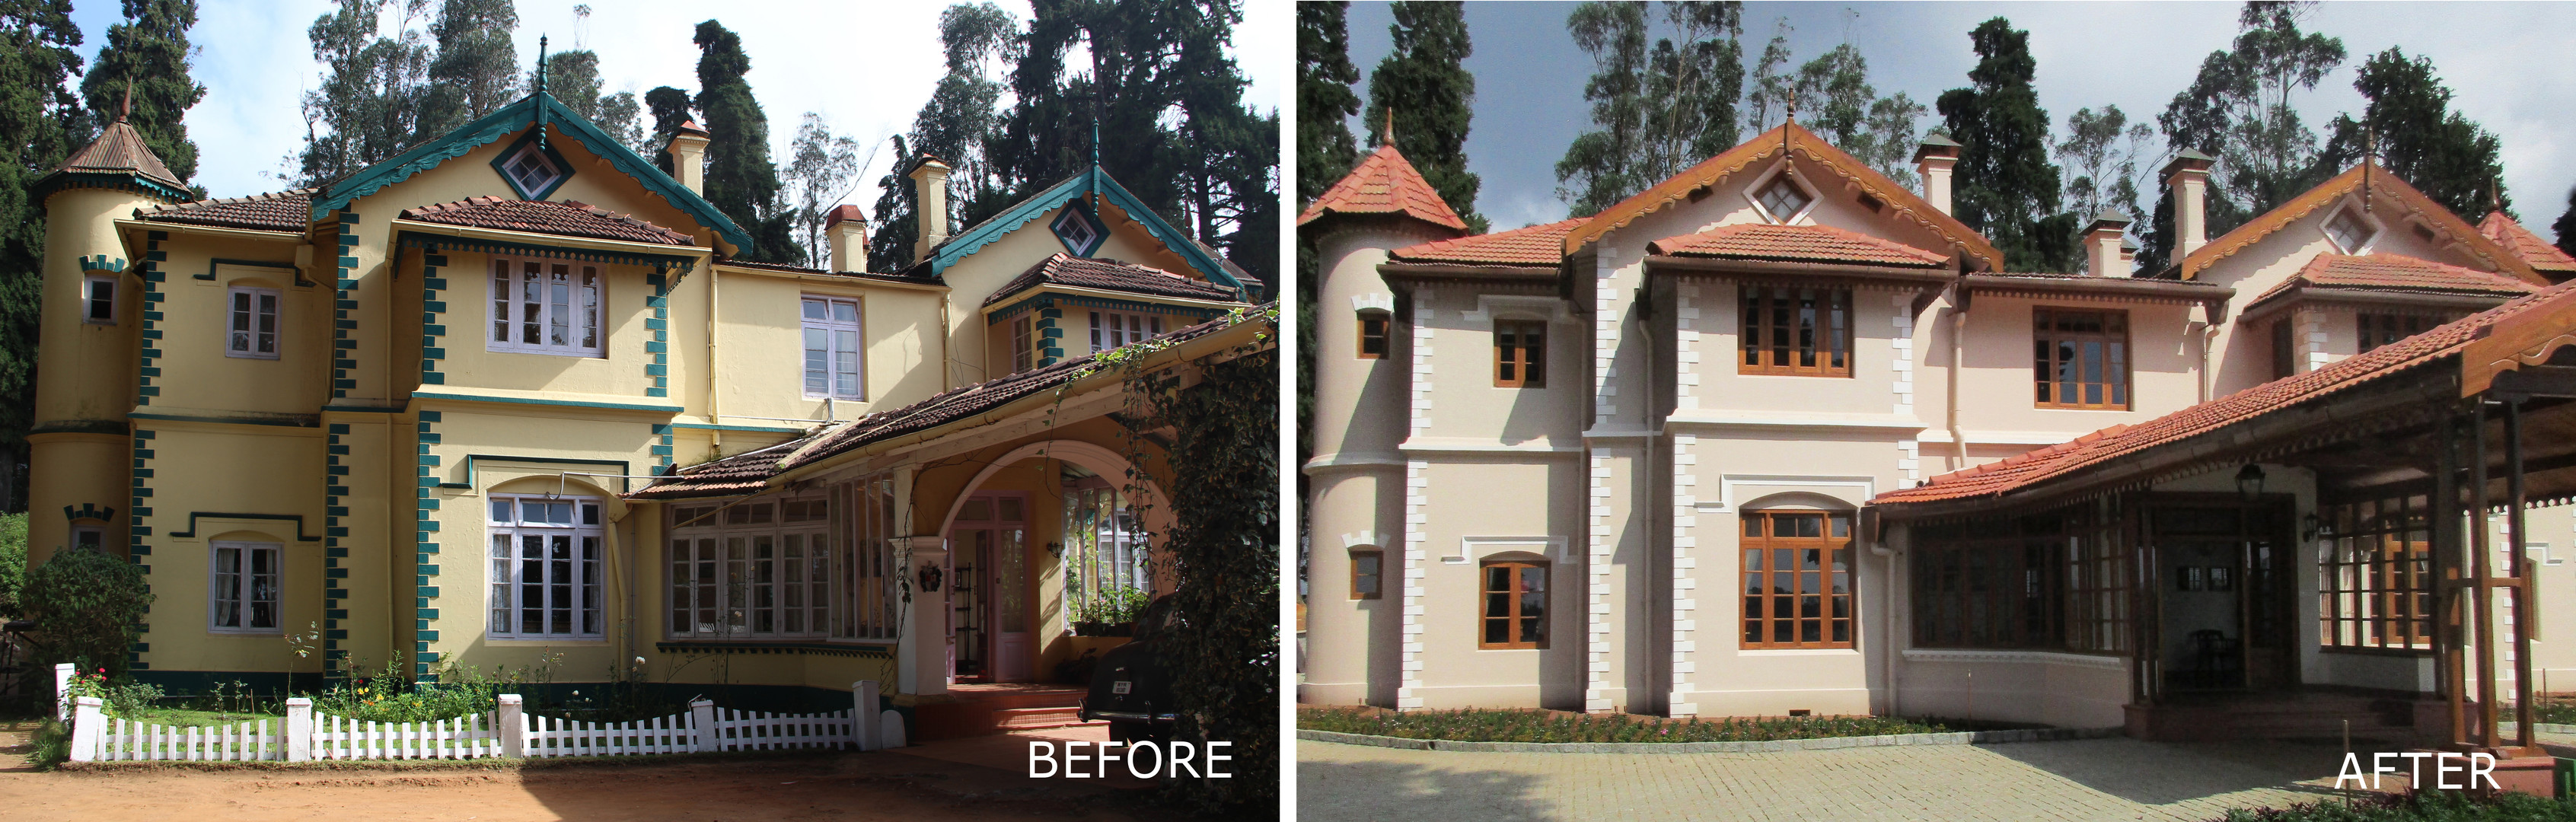 Before and After - Exterior